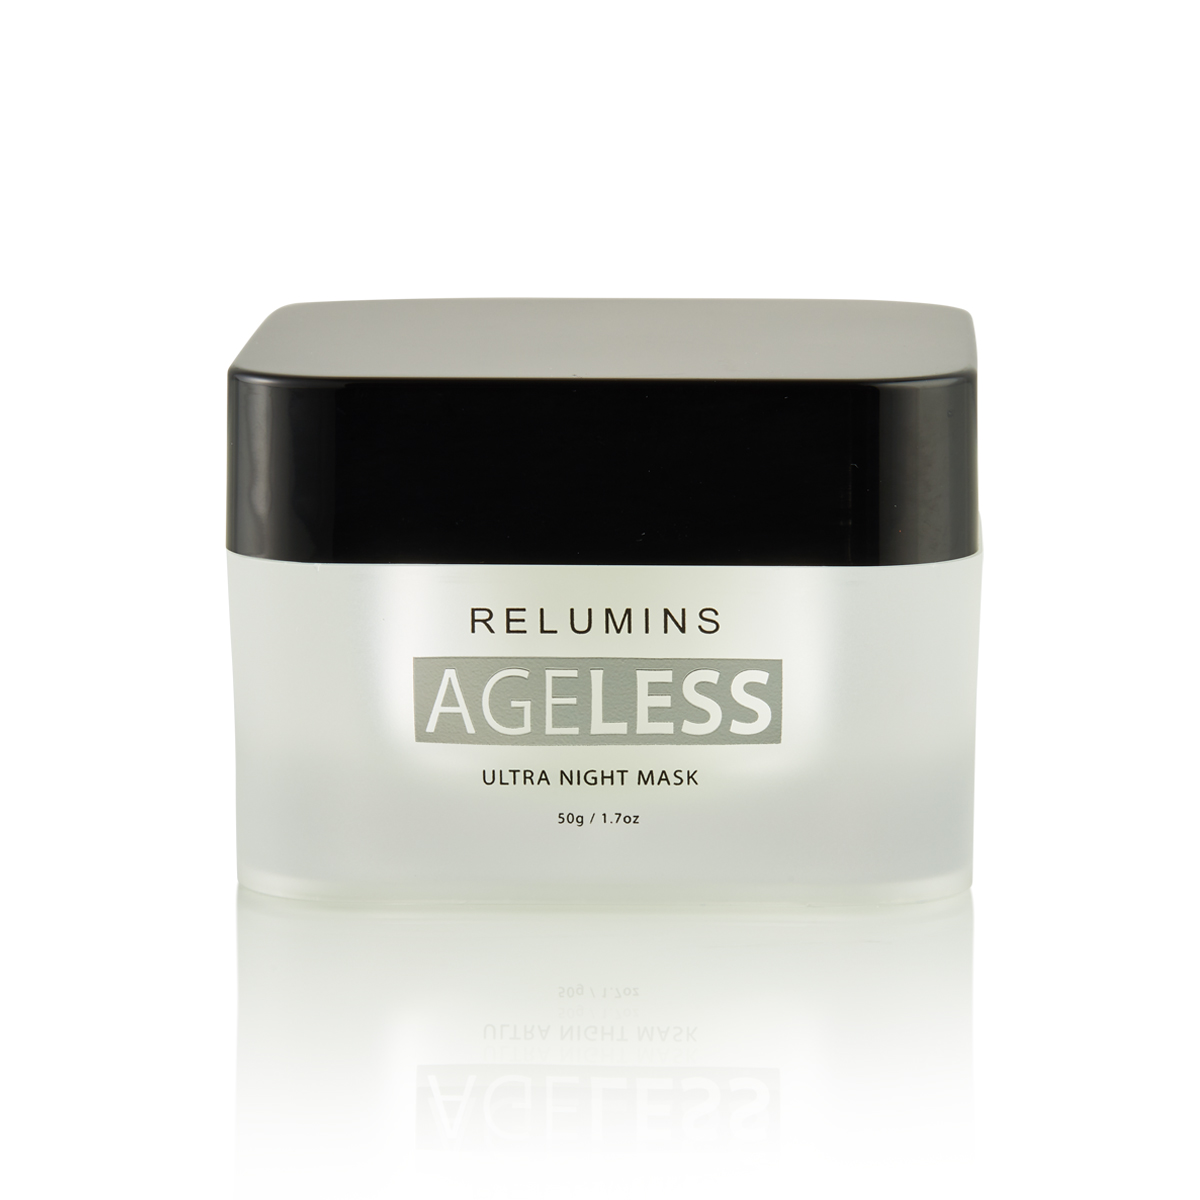 NEW! Reverse signs of aging overnight with RELUMINS AGELESS Ultra Night mask